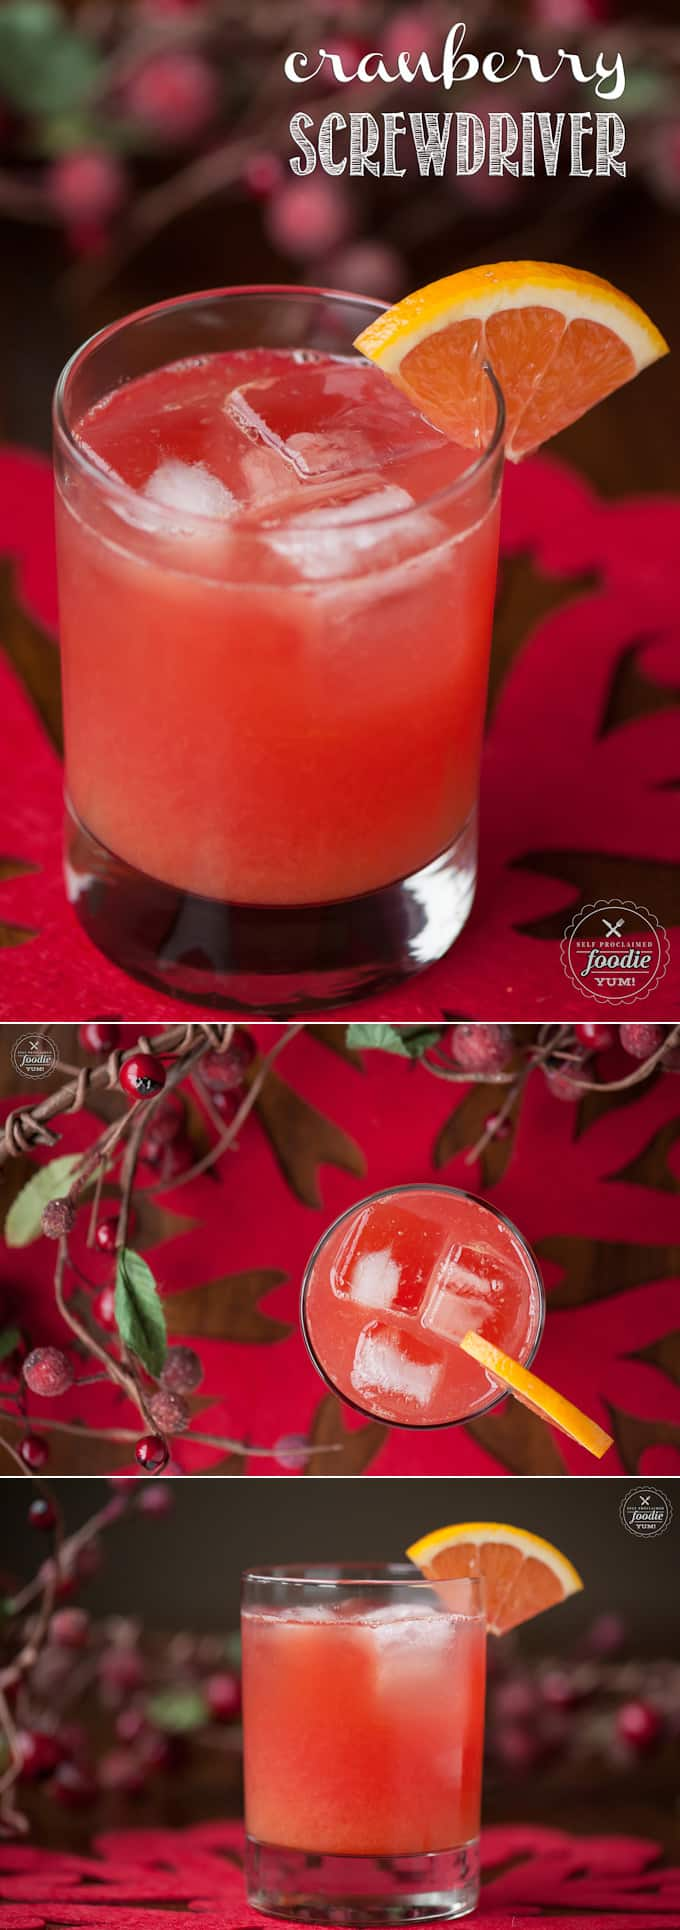 This Cranberry Screwdriver with cranberry vodka, freshly squeezed orange juice, and a splash of Grand Marnier is a delicious and easy to make cocktail.